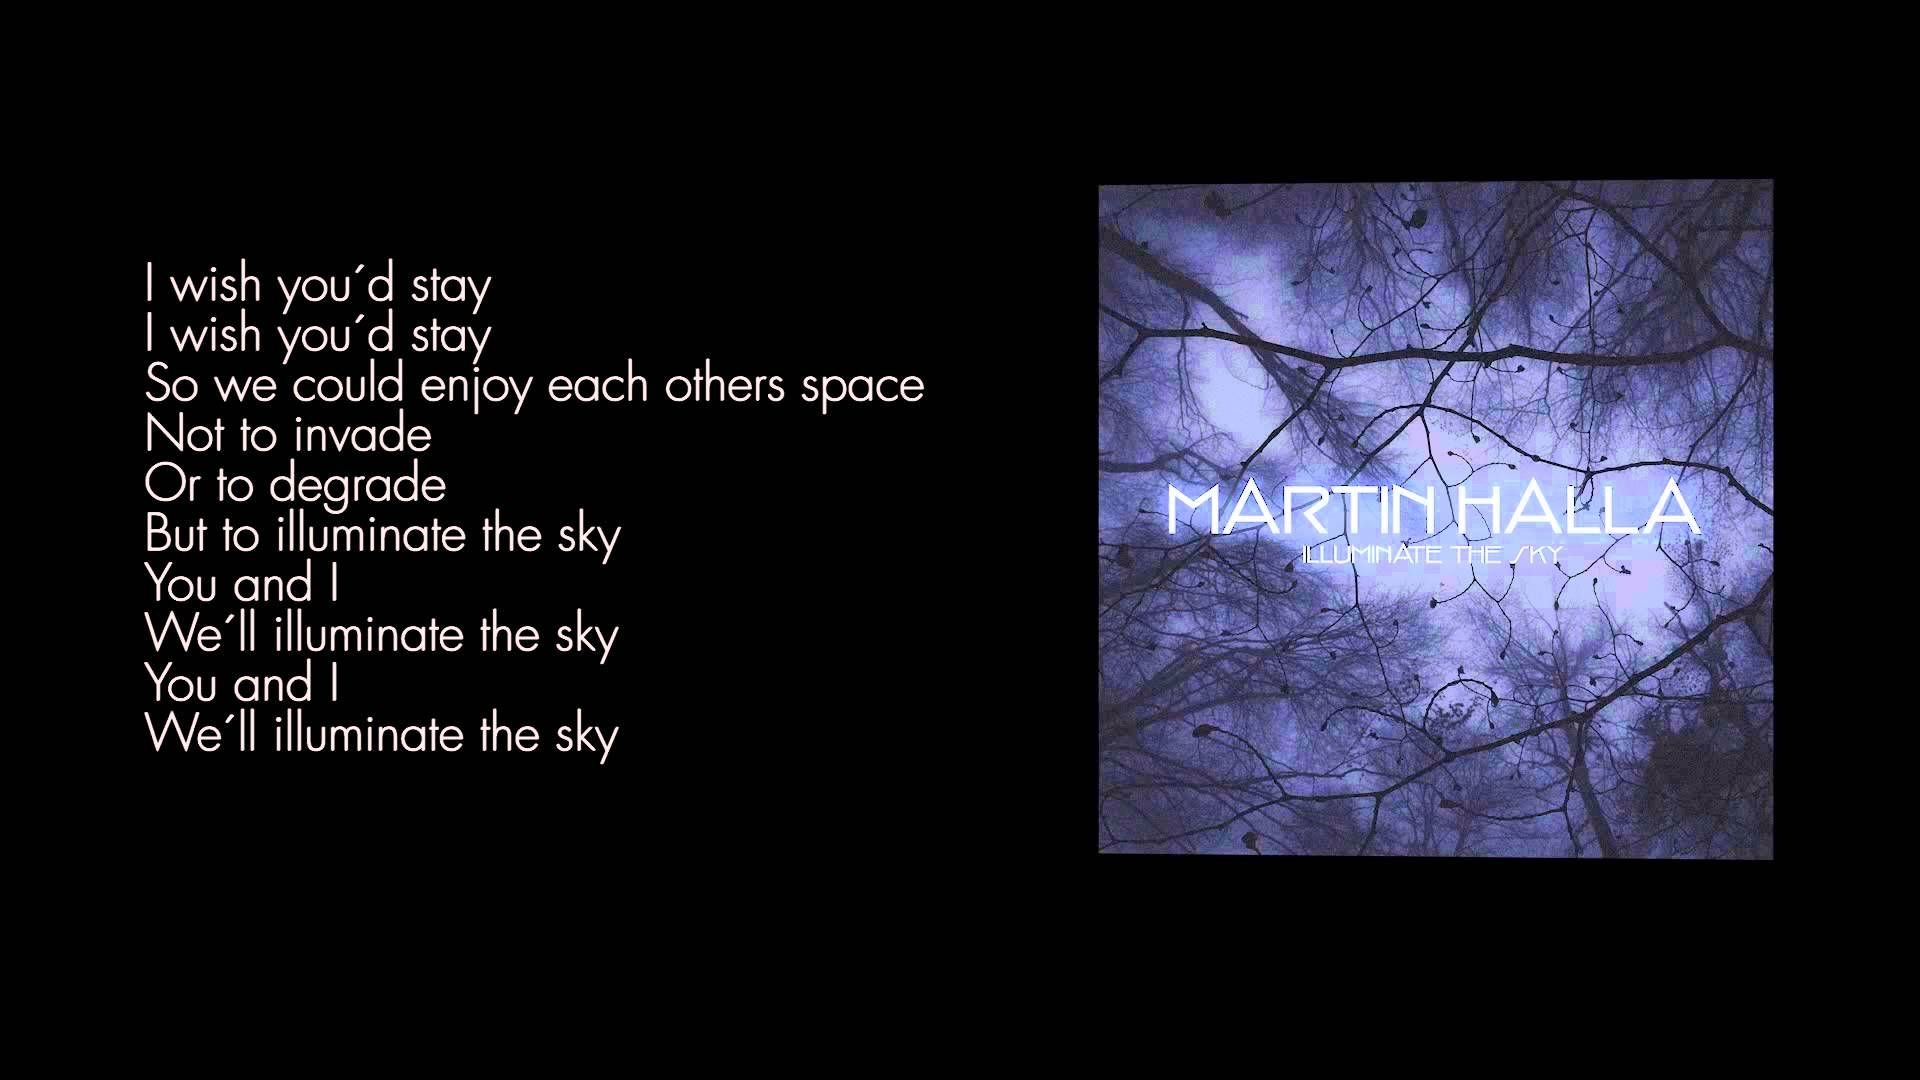 Martin Halla - Illuminate The Sky (Lyric Video)